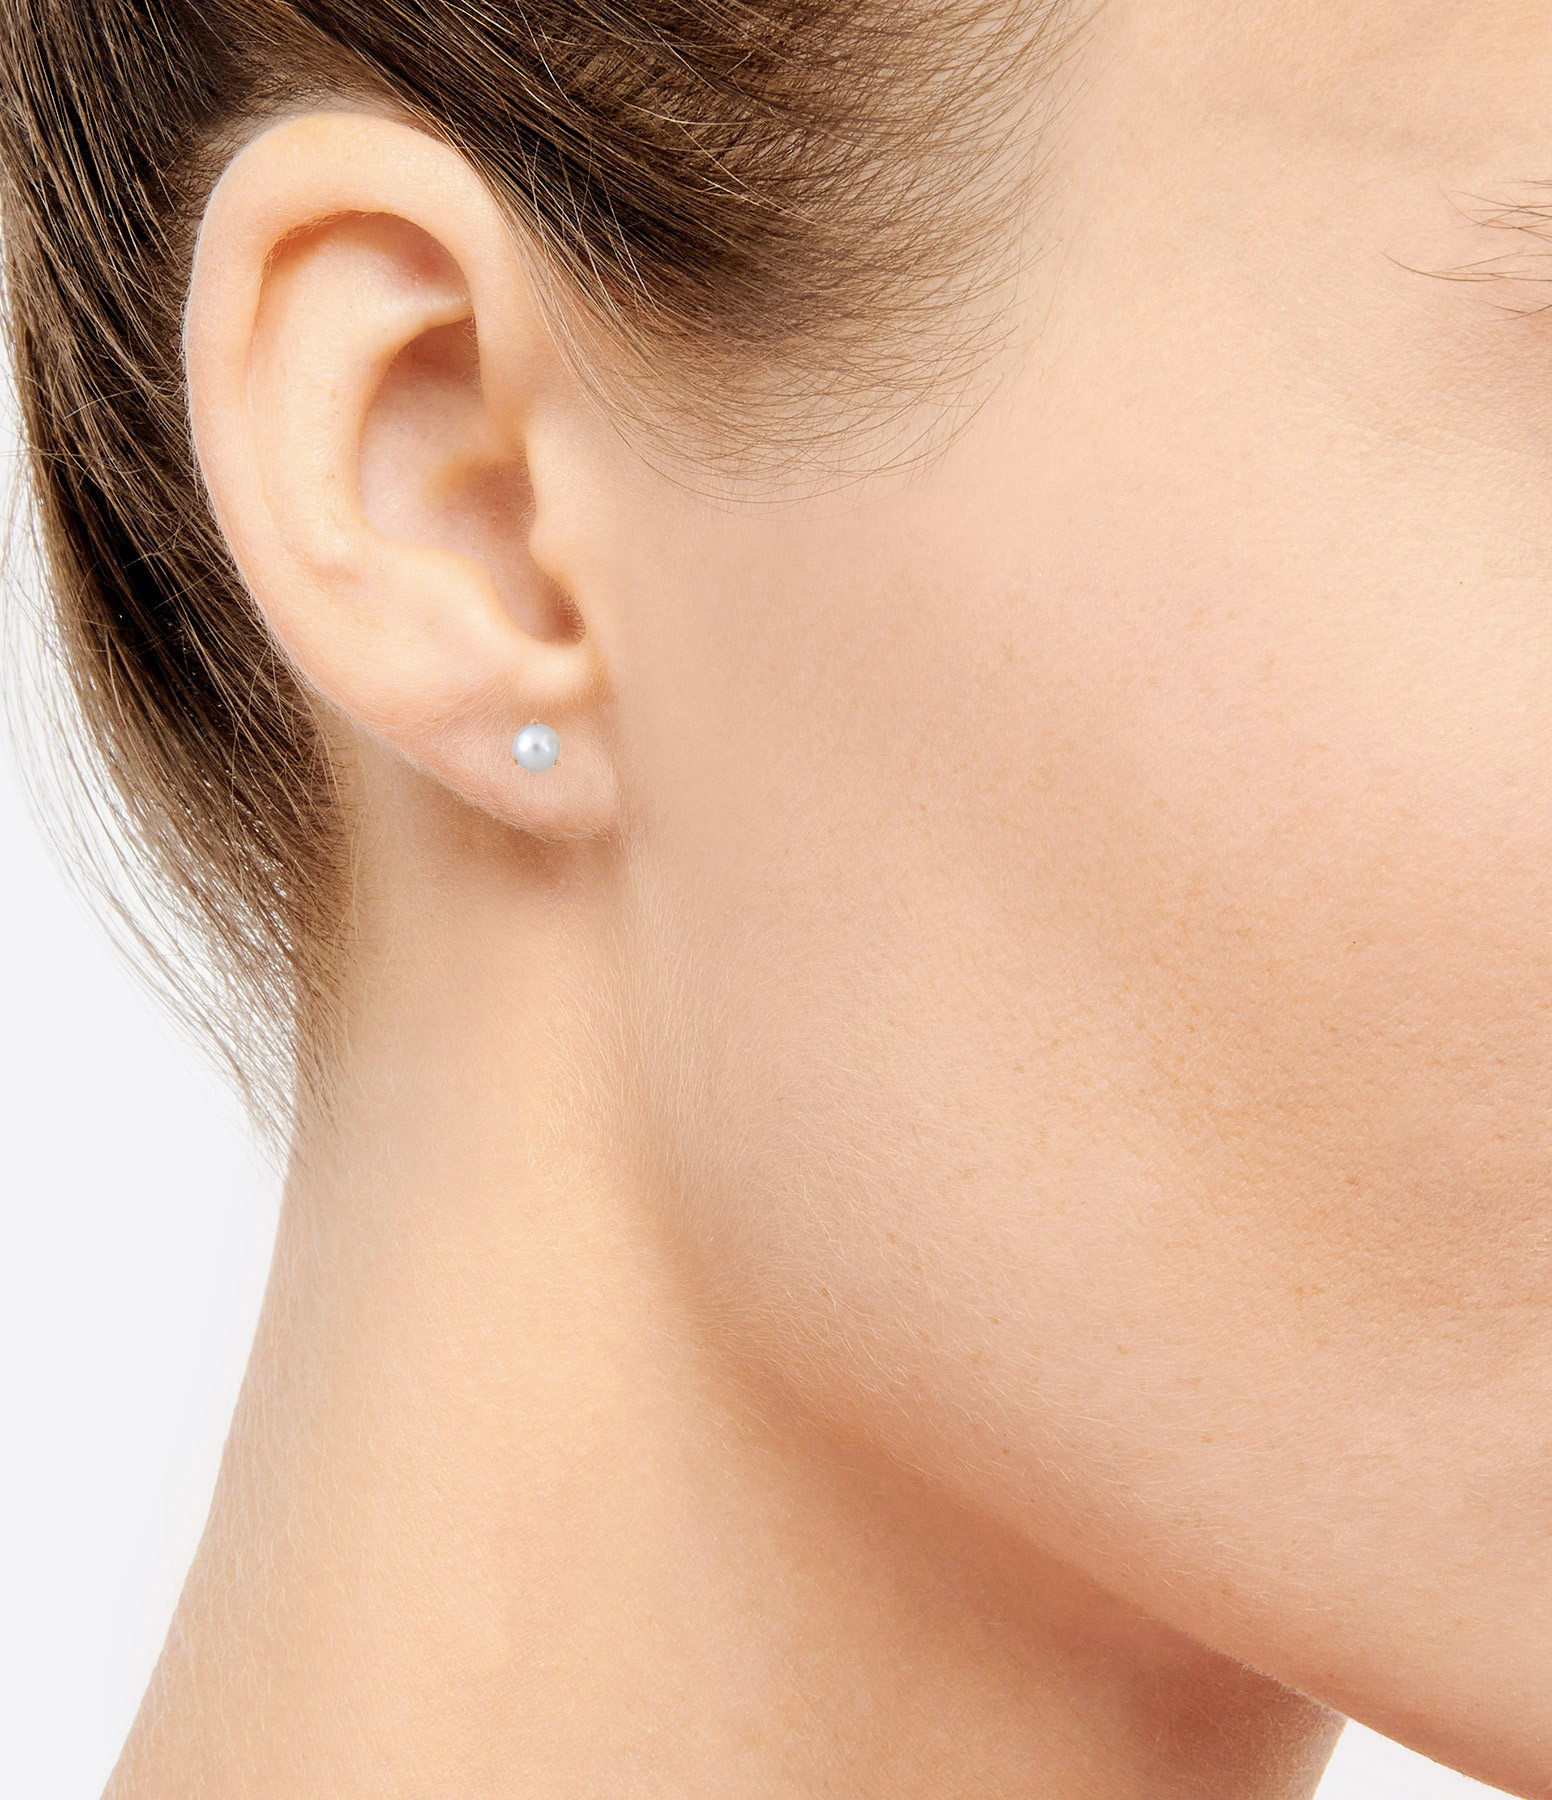 GINETTE_NY - Boucles d'oreilles Maria Or Rose Perle